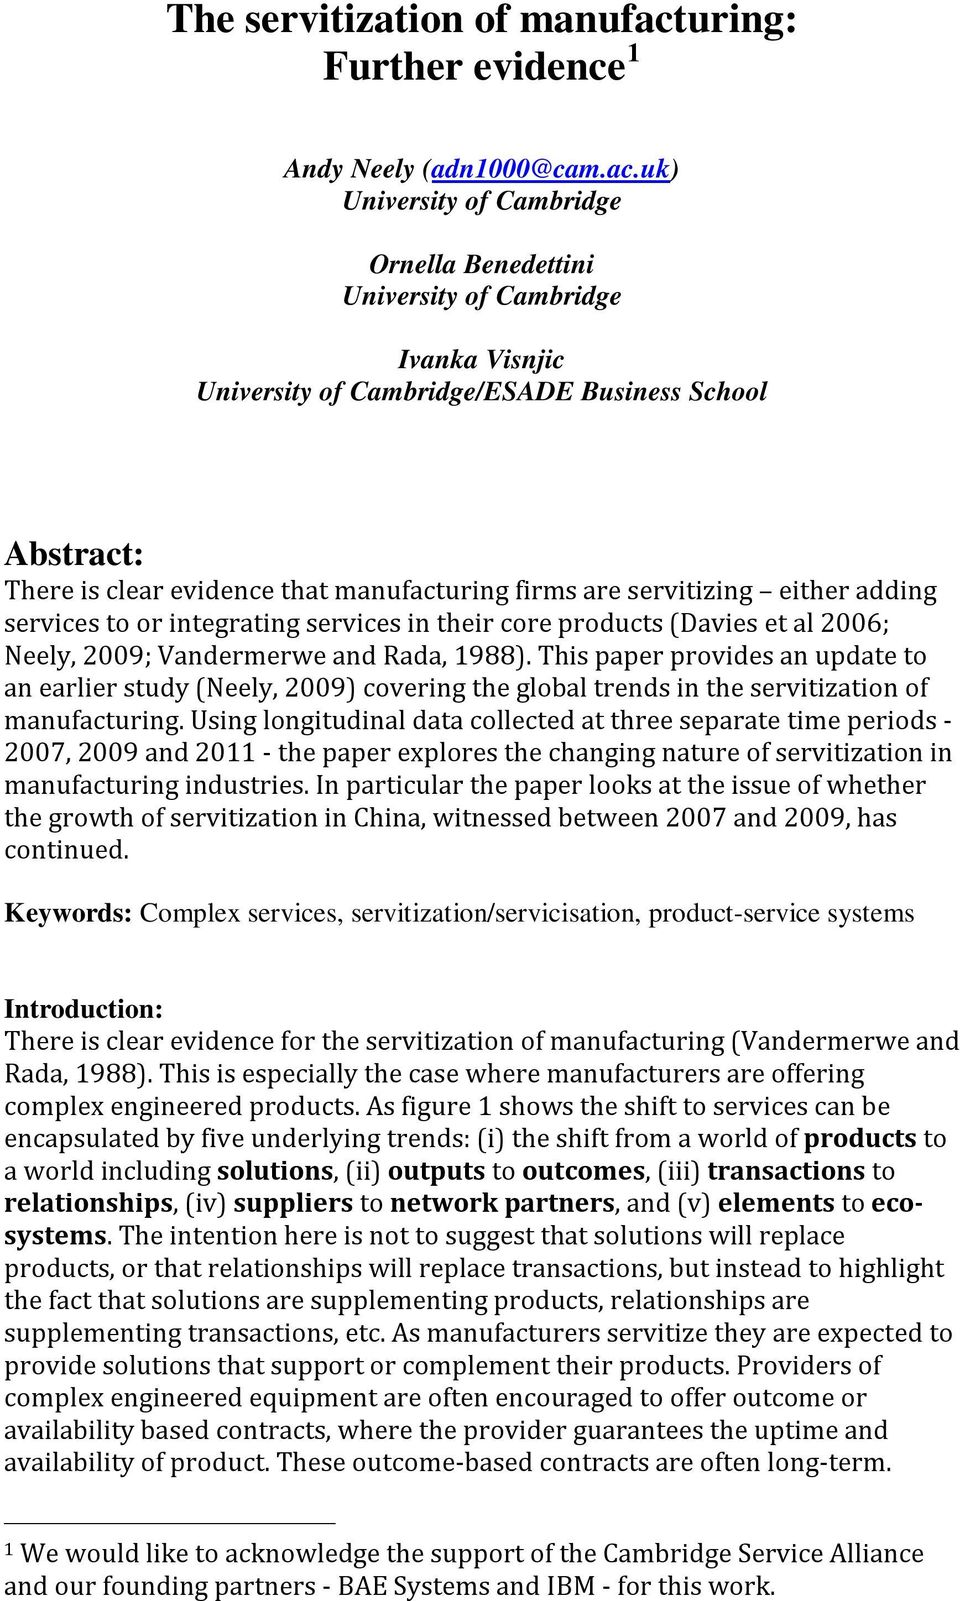 uk) University of Cambridge Ornella Benedettini University of Cambridge Ivanka Visnjic University of Cambridge/ESADE Business School Abstract: There is clear evidence that manufacturing firms are